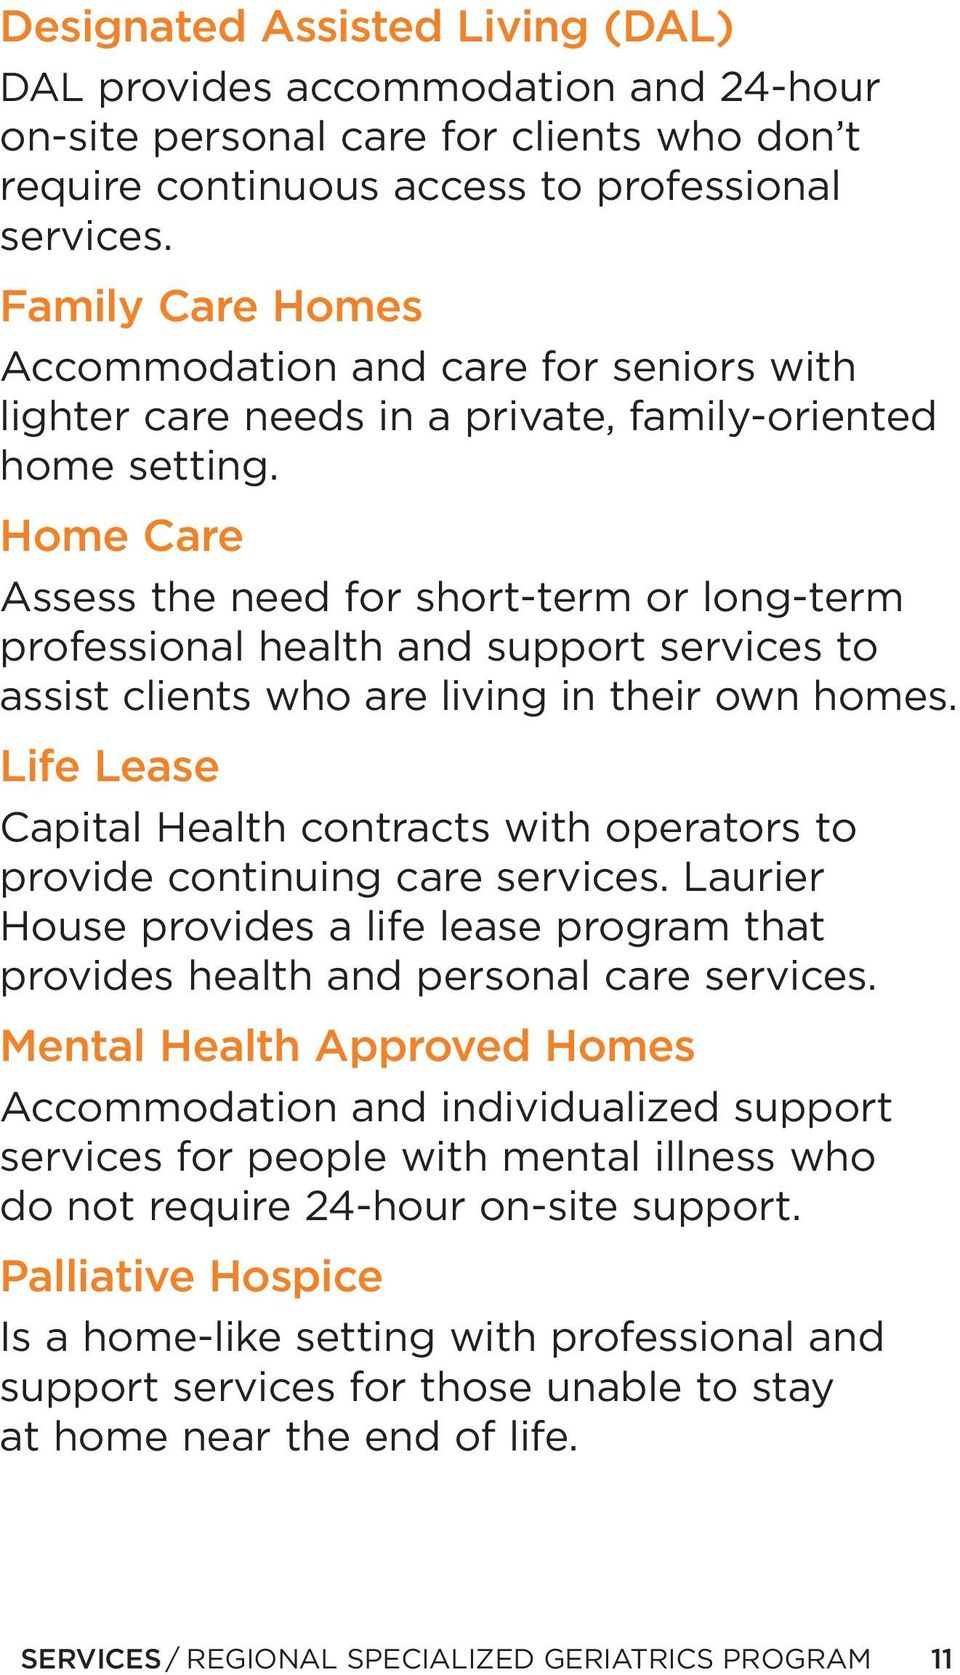 Home Care Assess the need for short-term or long-term professional health and support services to assist clients who are living in their own homes.